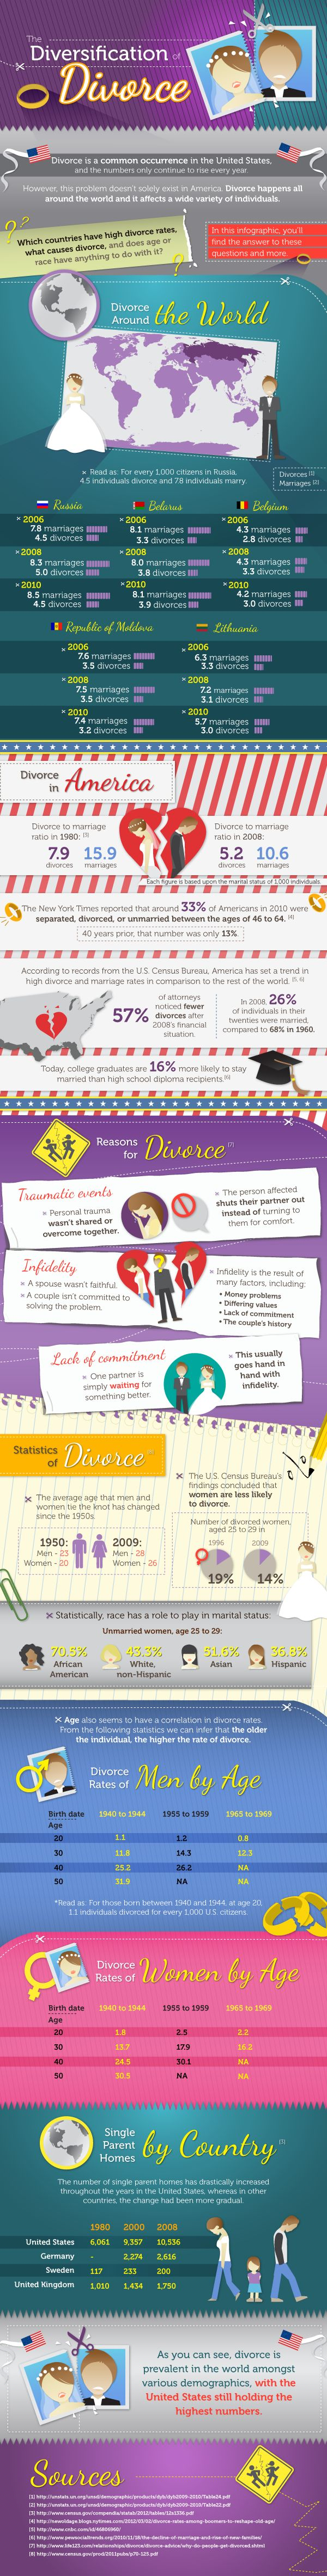 Filing for divorce is more common than you think and the numbers are increasing every year, especially in the US. However, divorce is an issue that exists worldwide and can affect a wide range of people.